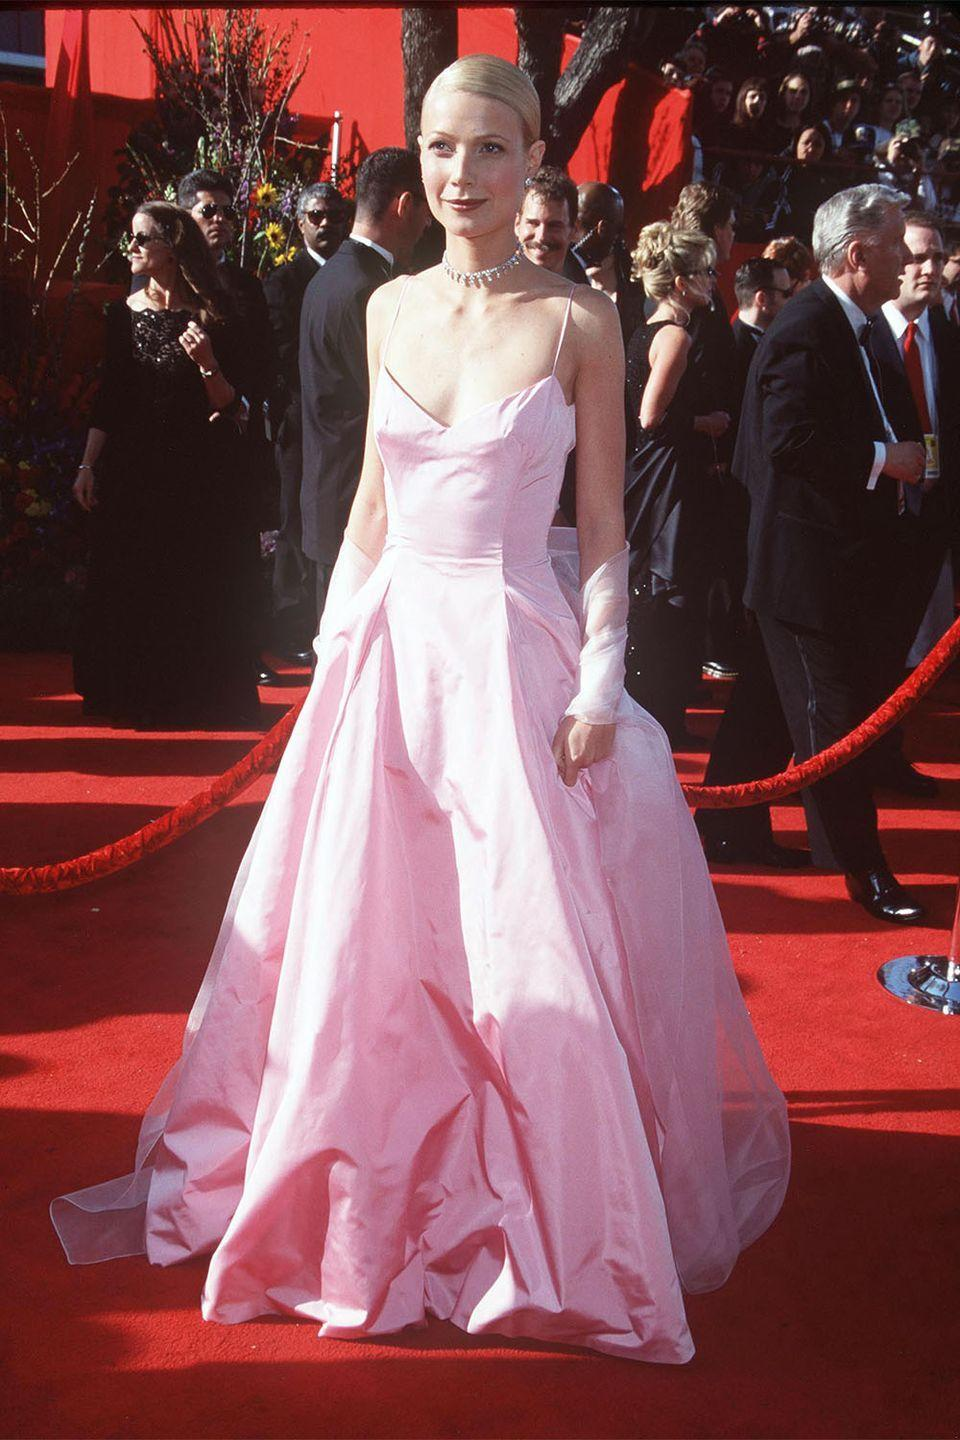 <p>Not only did Gwyneth Paltrow cement her status as an award-winning actress at this Academy Awards, but she also cemented her status as a style icon in the making. </p>